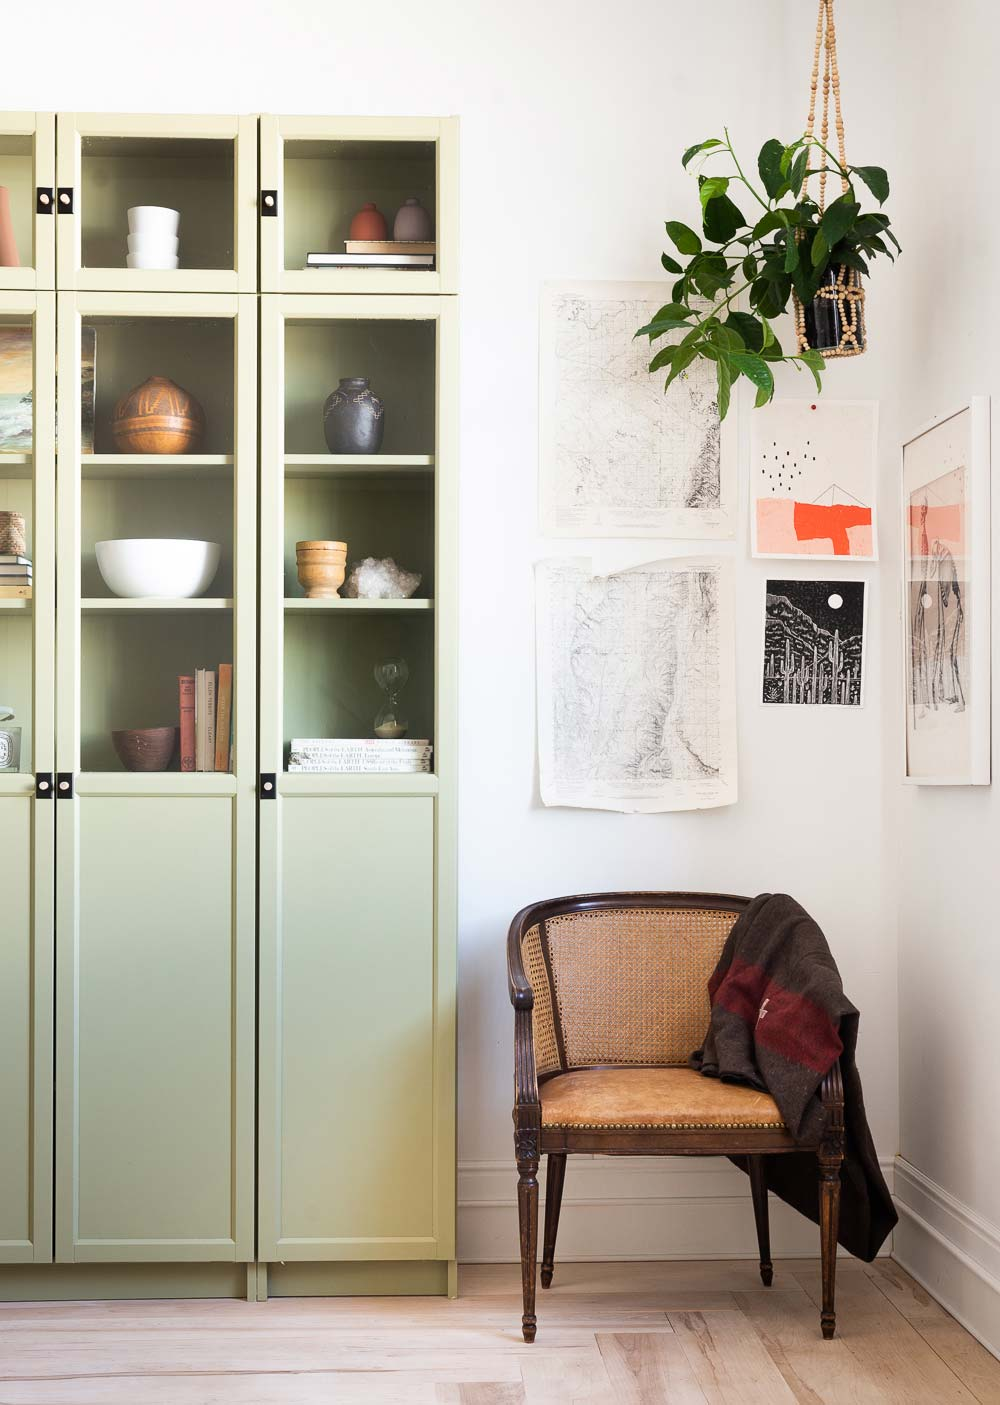 How To Paint Furniture: Everything You Need To Know ...